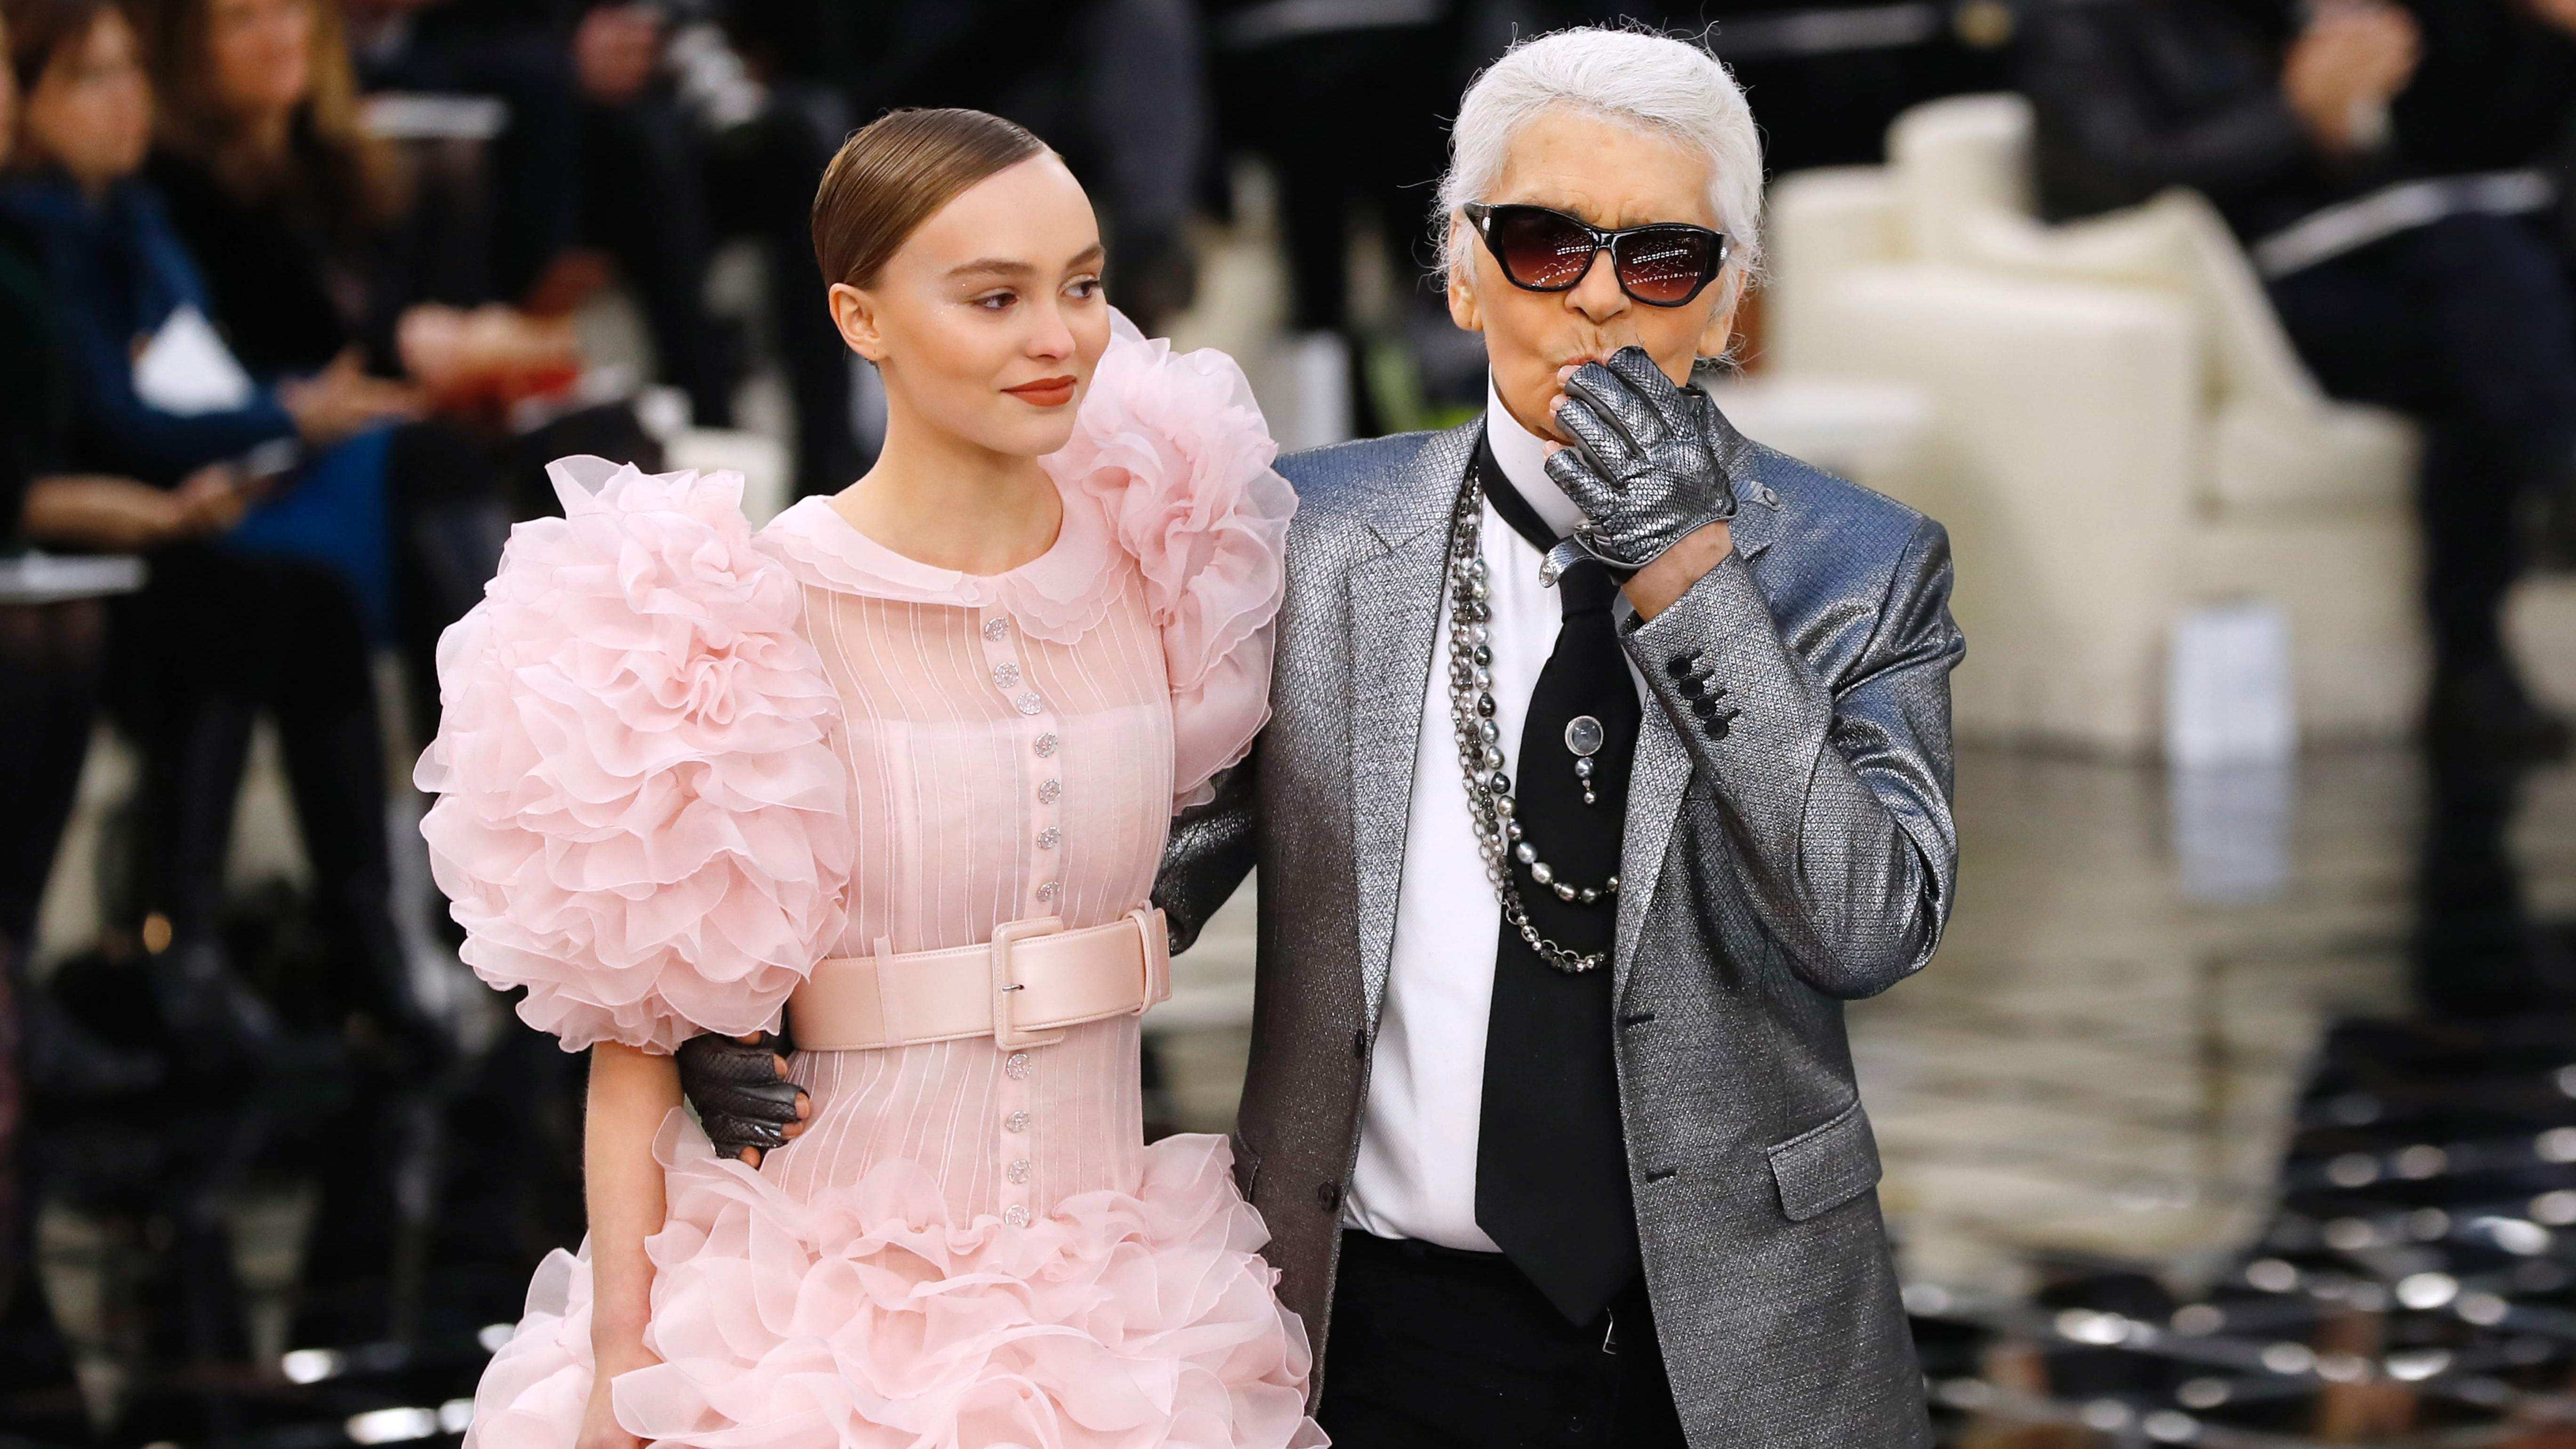 TOPSHOT - German fashion designer Karl Lagerfeld (R) acknowledges the audience next to French and US actress and model Lily-Rose Melody Depp at the end of the Chanel during the 2017 spring/summer Haute Couture collection on January 24, 2017 in Paris. / AFP PHOTO / Patrick KOVARIKPATRICK KOVARIK/AFP/Getty Images ORG XMIT: 691911991 ORIG FILE ID: AFP_KM1YK